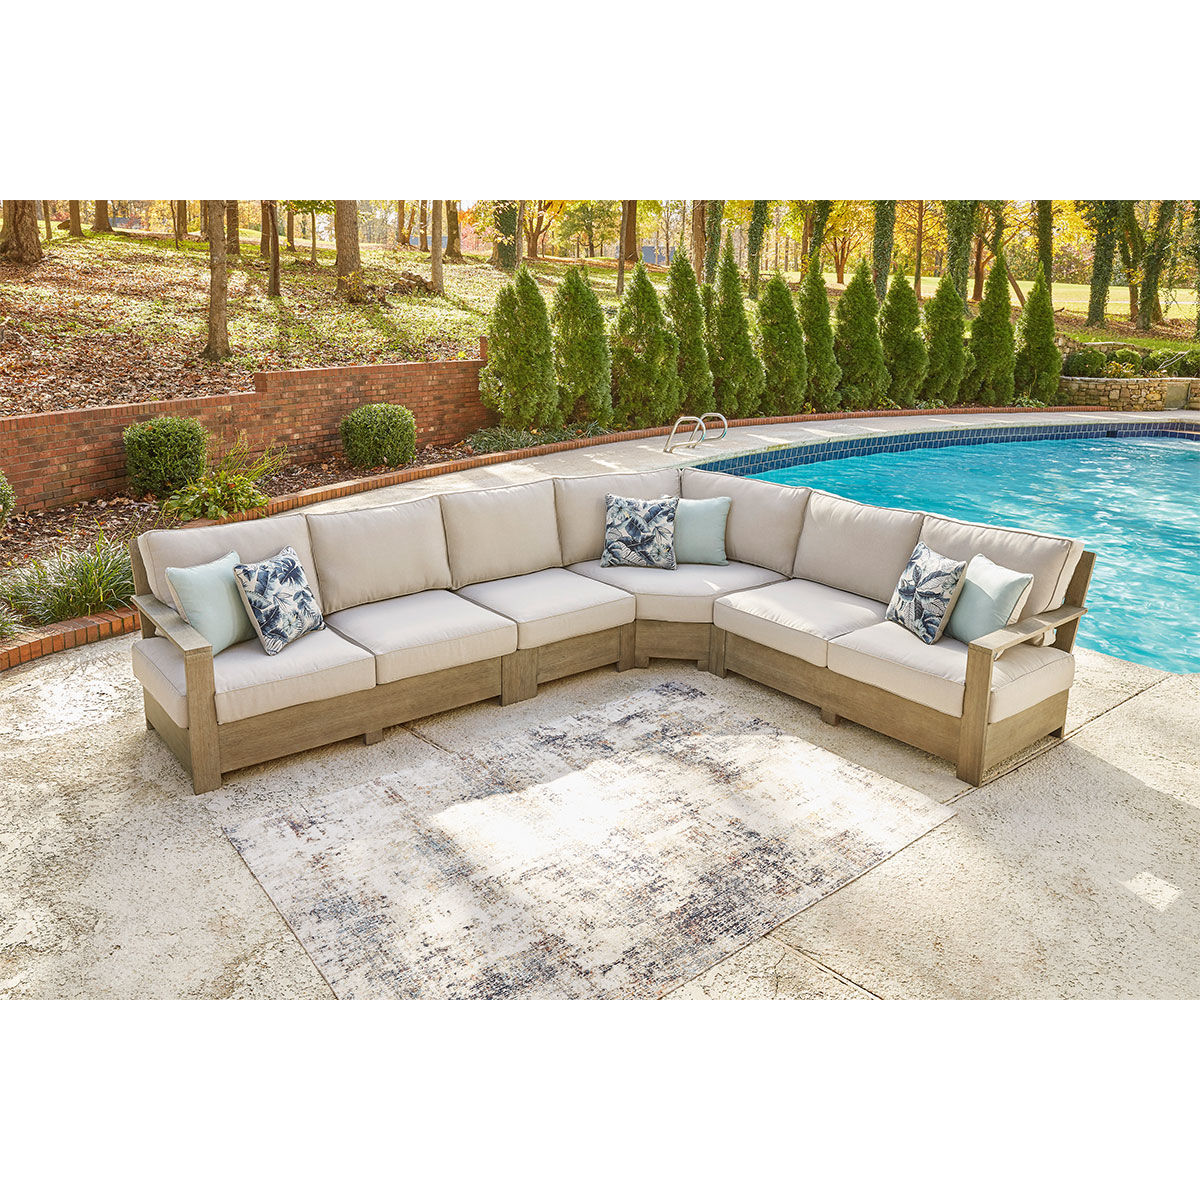 Picture of PANAMA 4PC PATIO SECTIONAL KIT